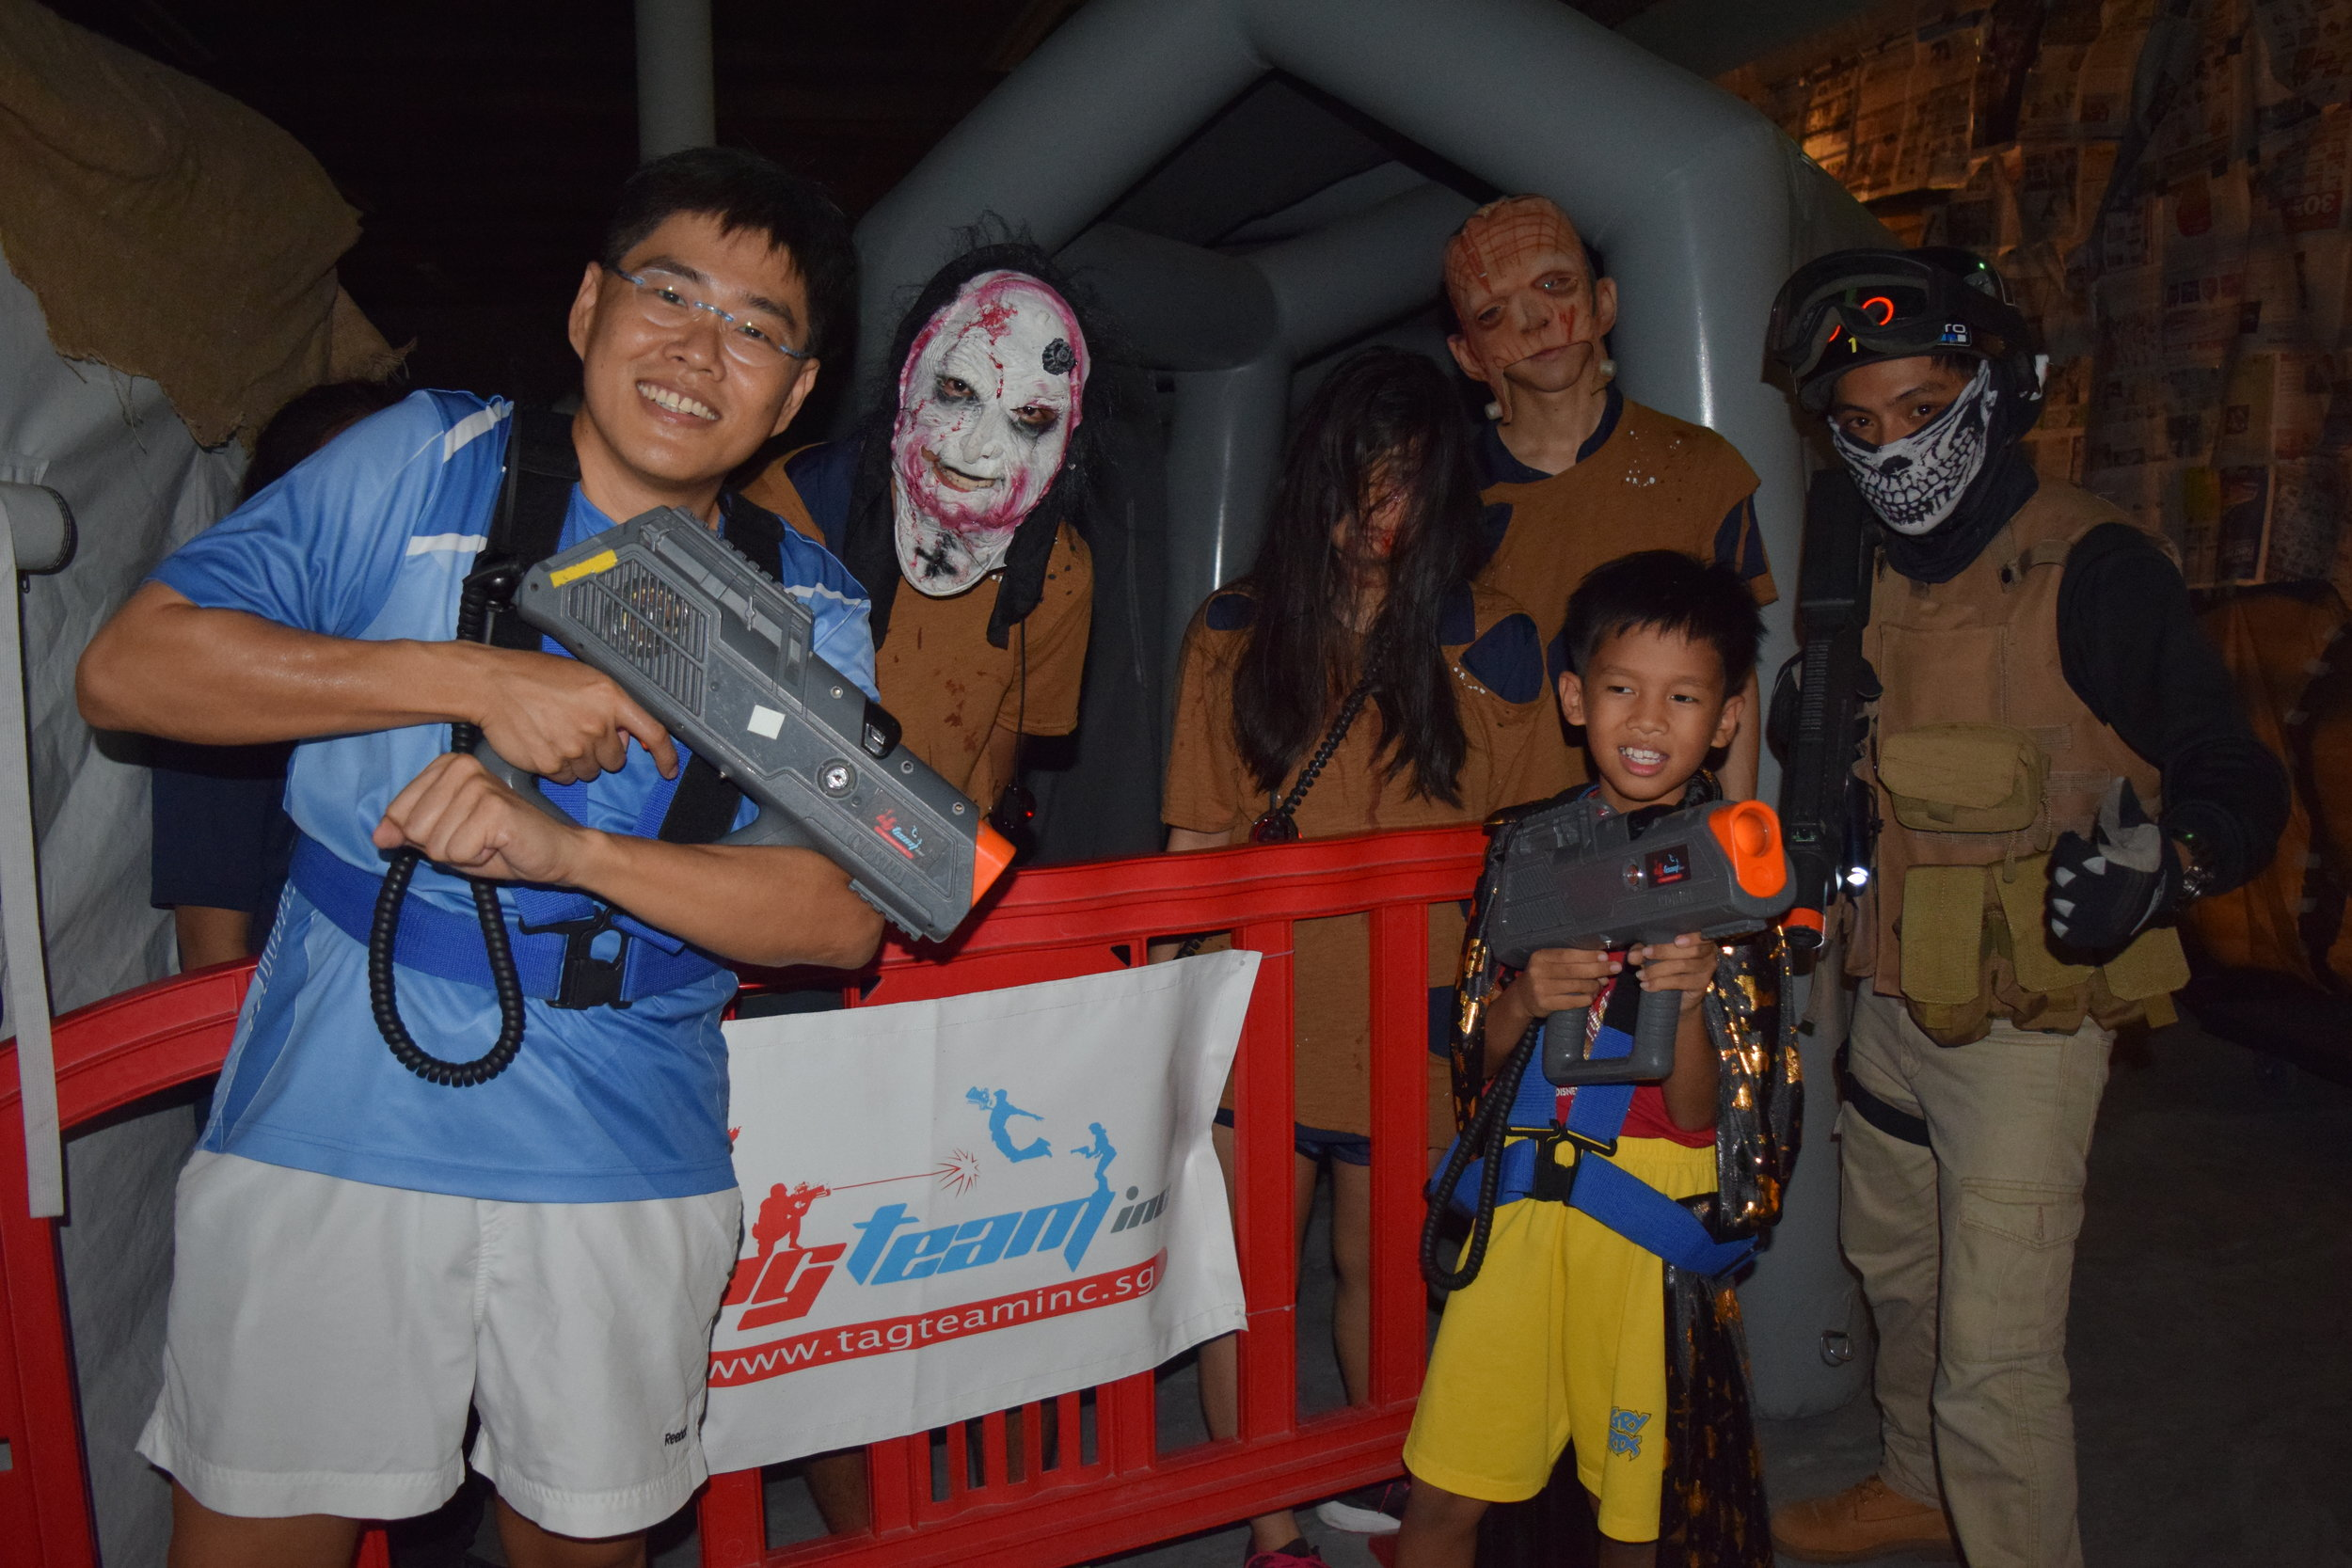 Halloween Laser Tag  Venue: TAG TEAM @East Coast Park